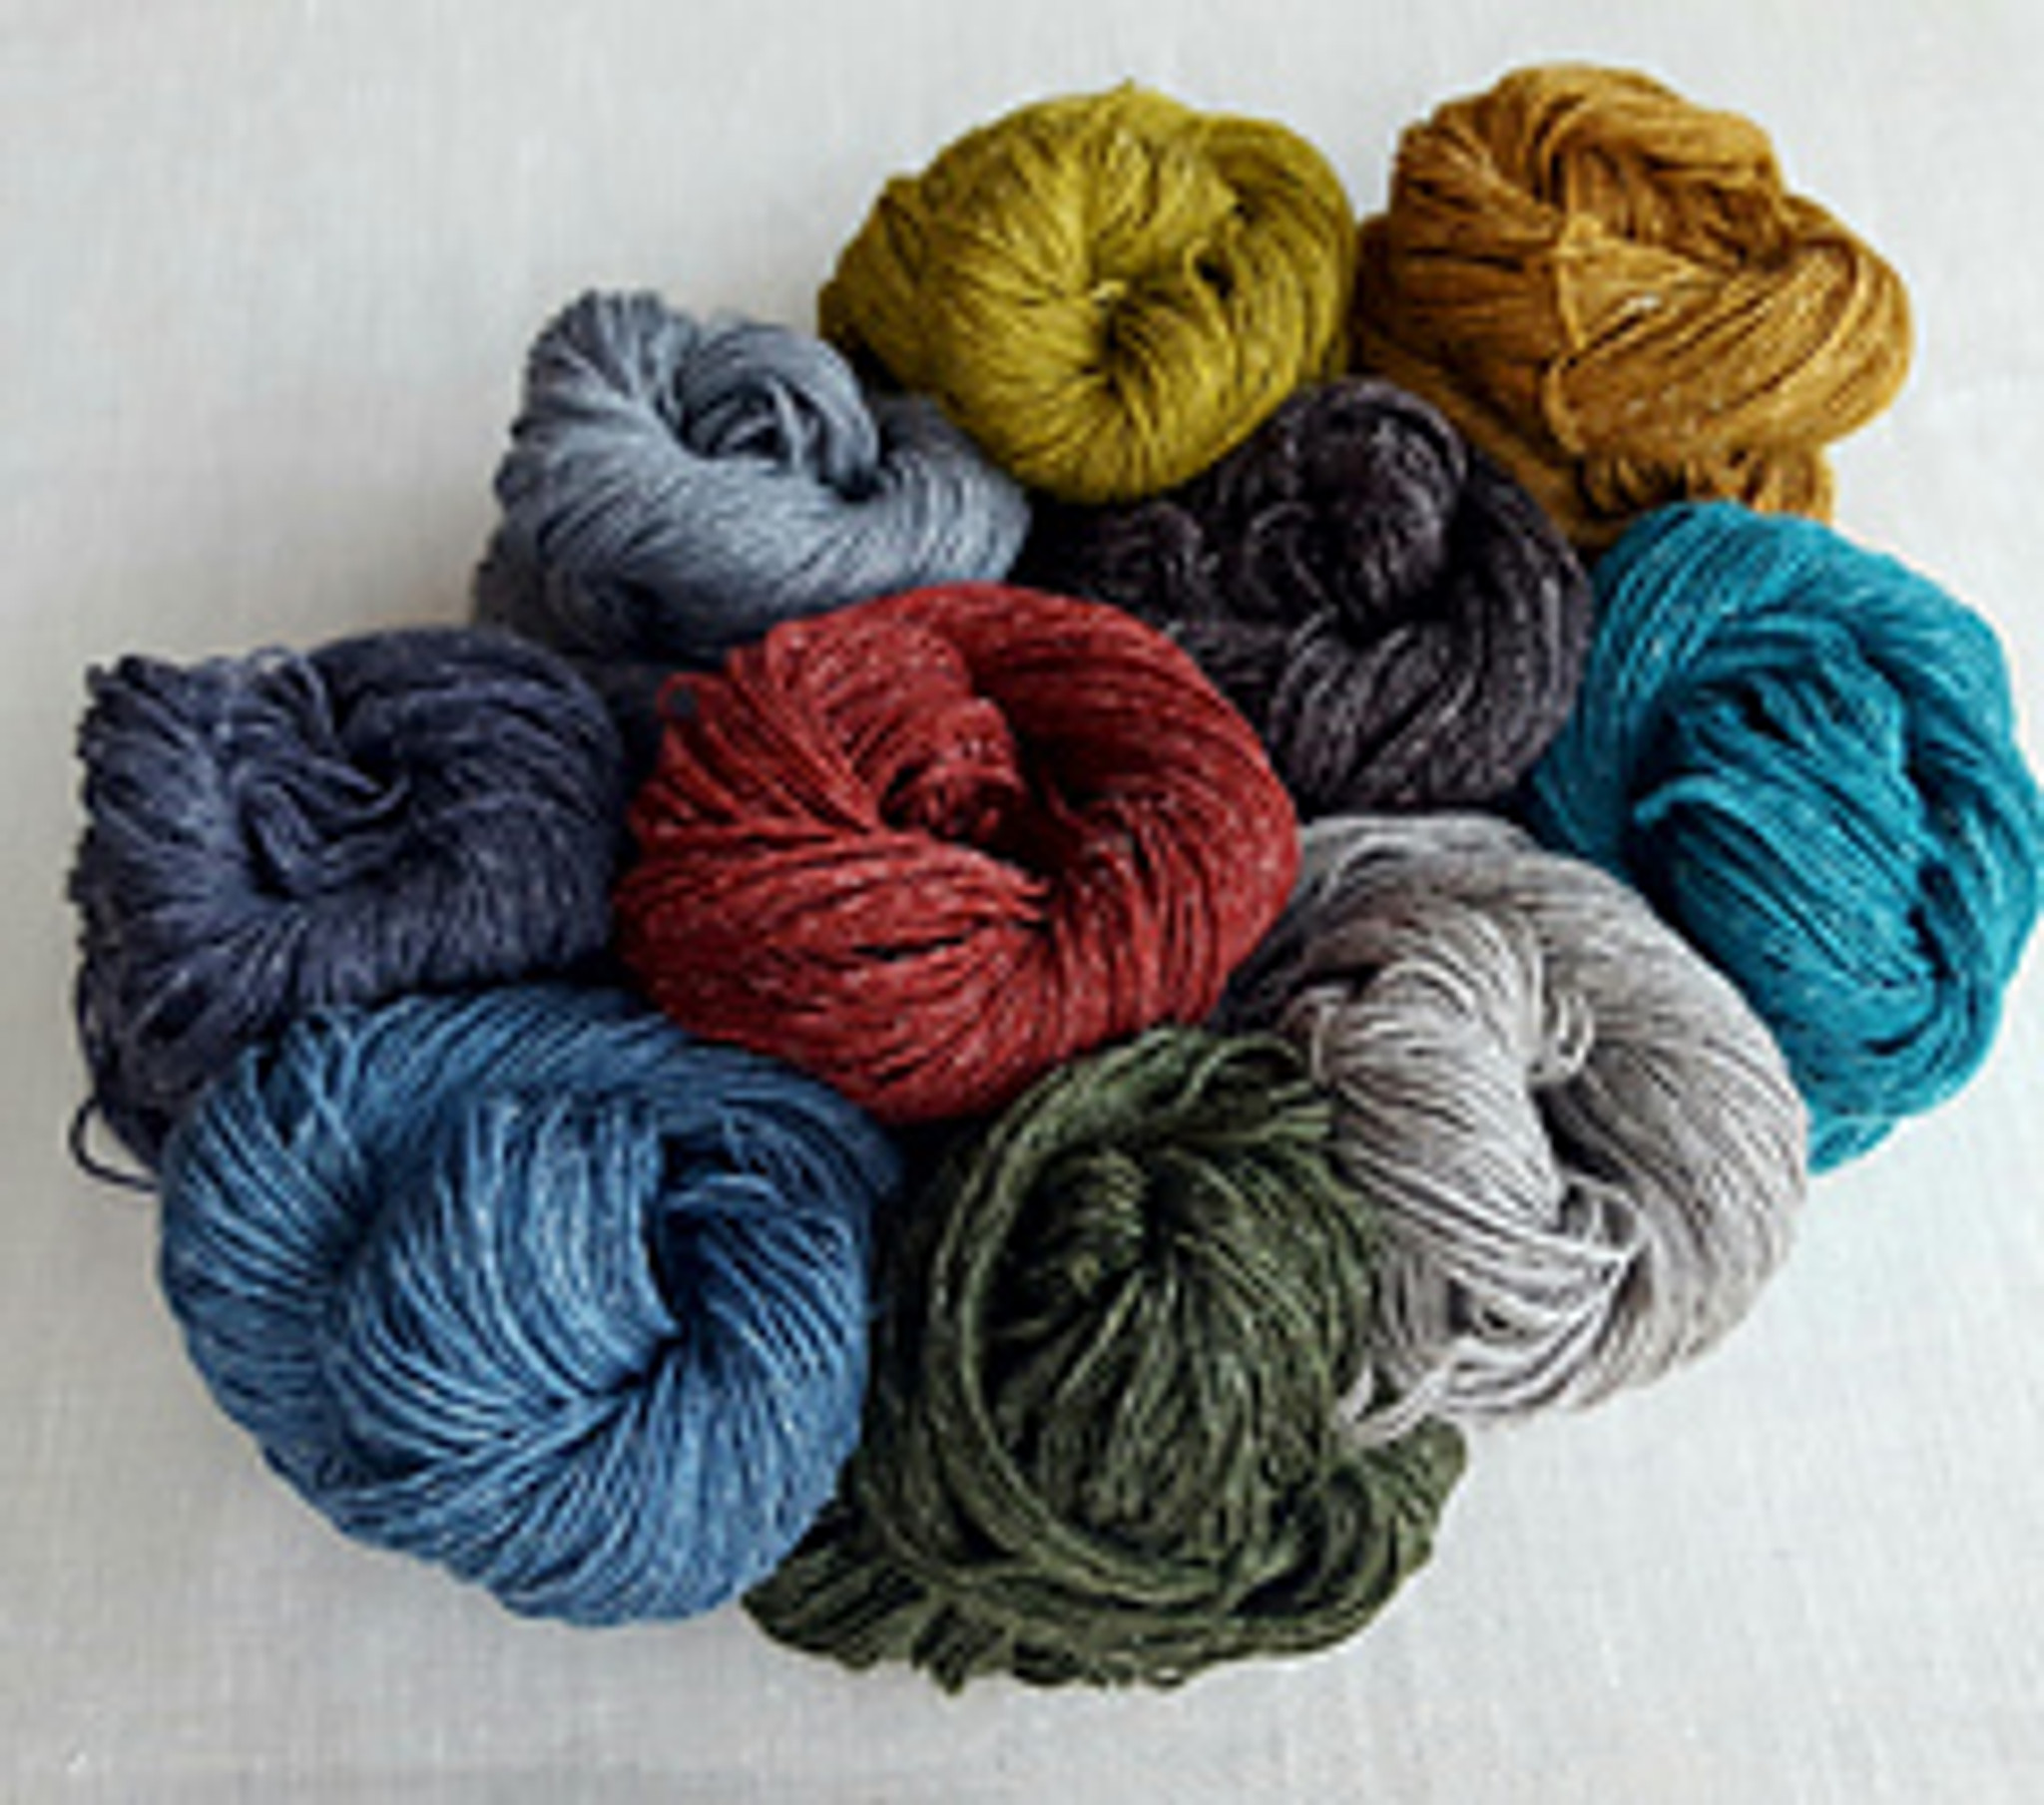 Nua Yarn from Stolen Stitches